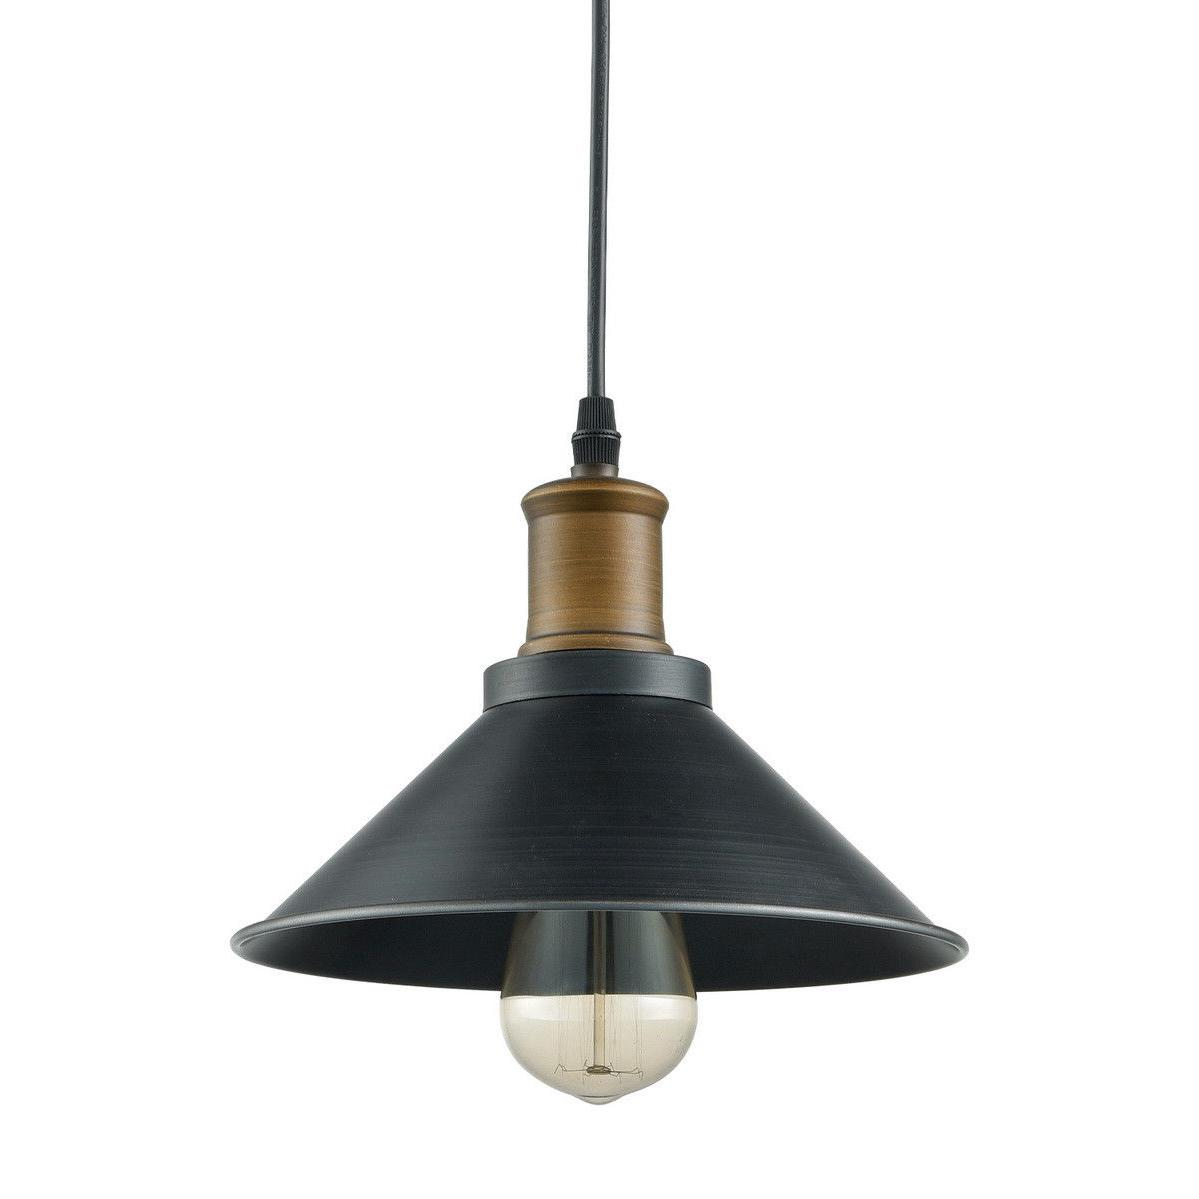 Farmhouse Industrial Ceiling Hanging Light Black Lighting